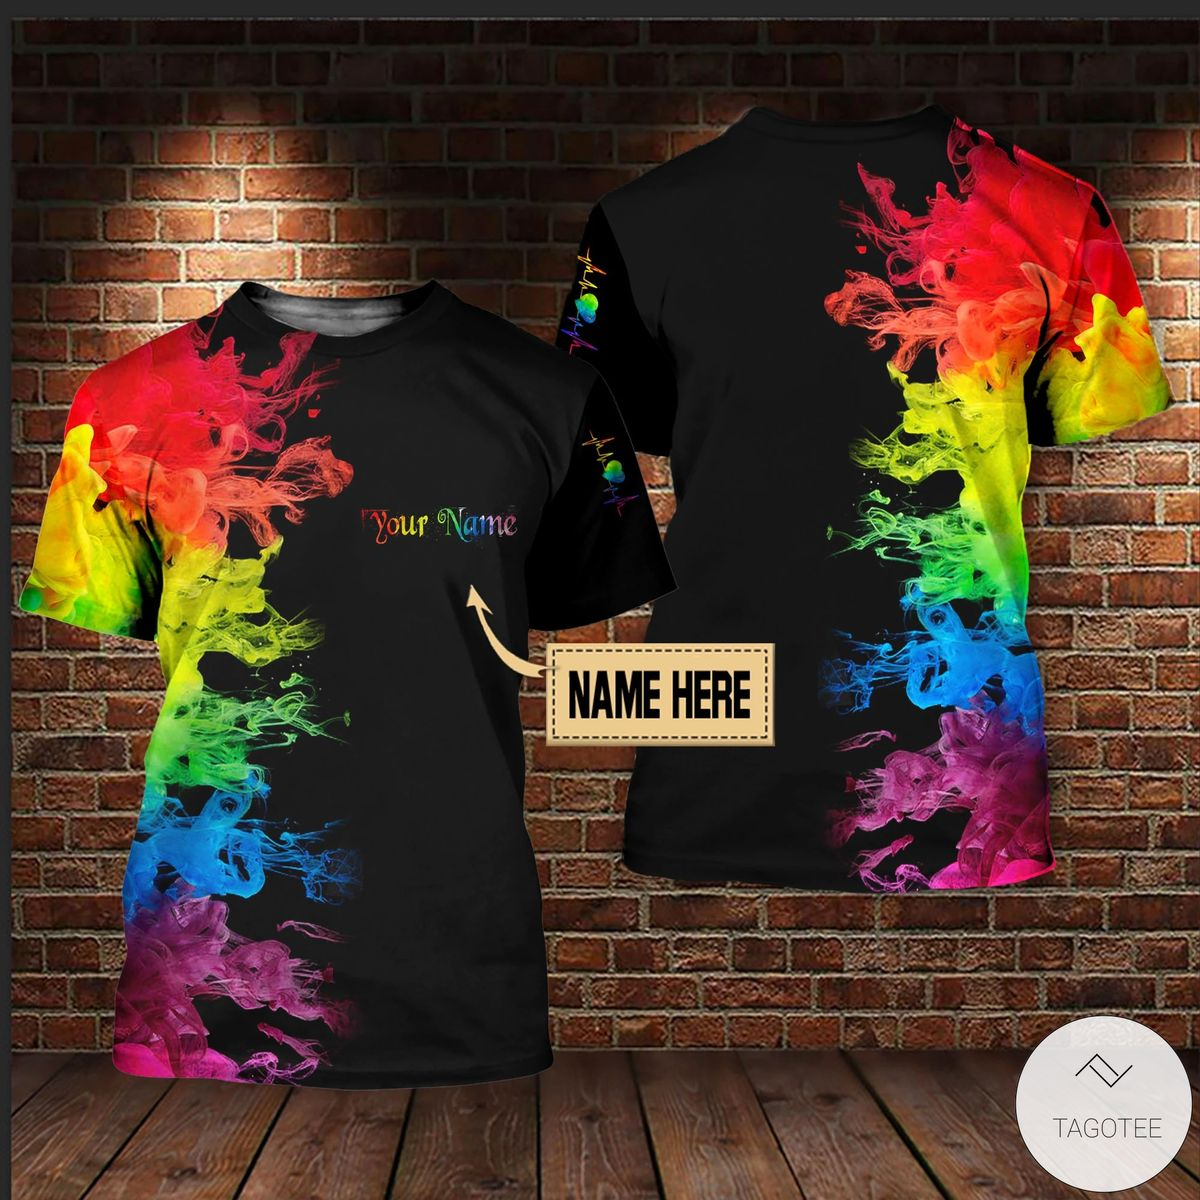 Personalized LGBT Colorful Smoke 3D All Over Print T-shirt, Hoodie